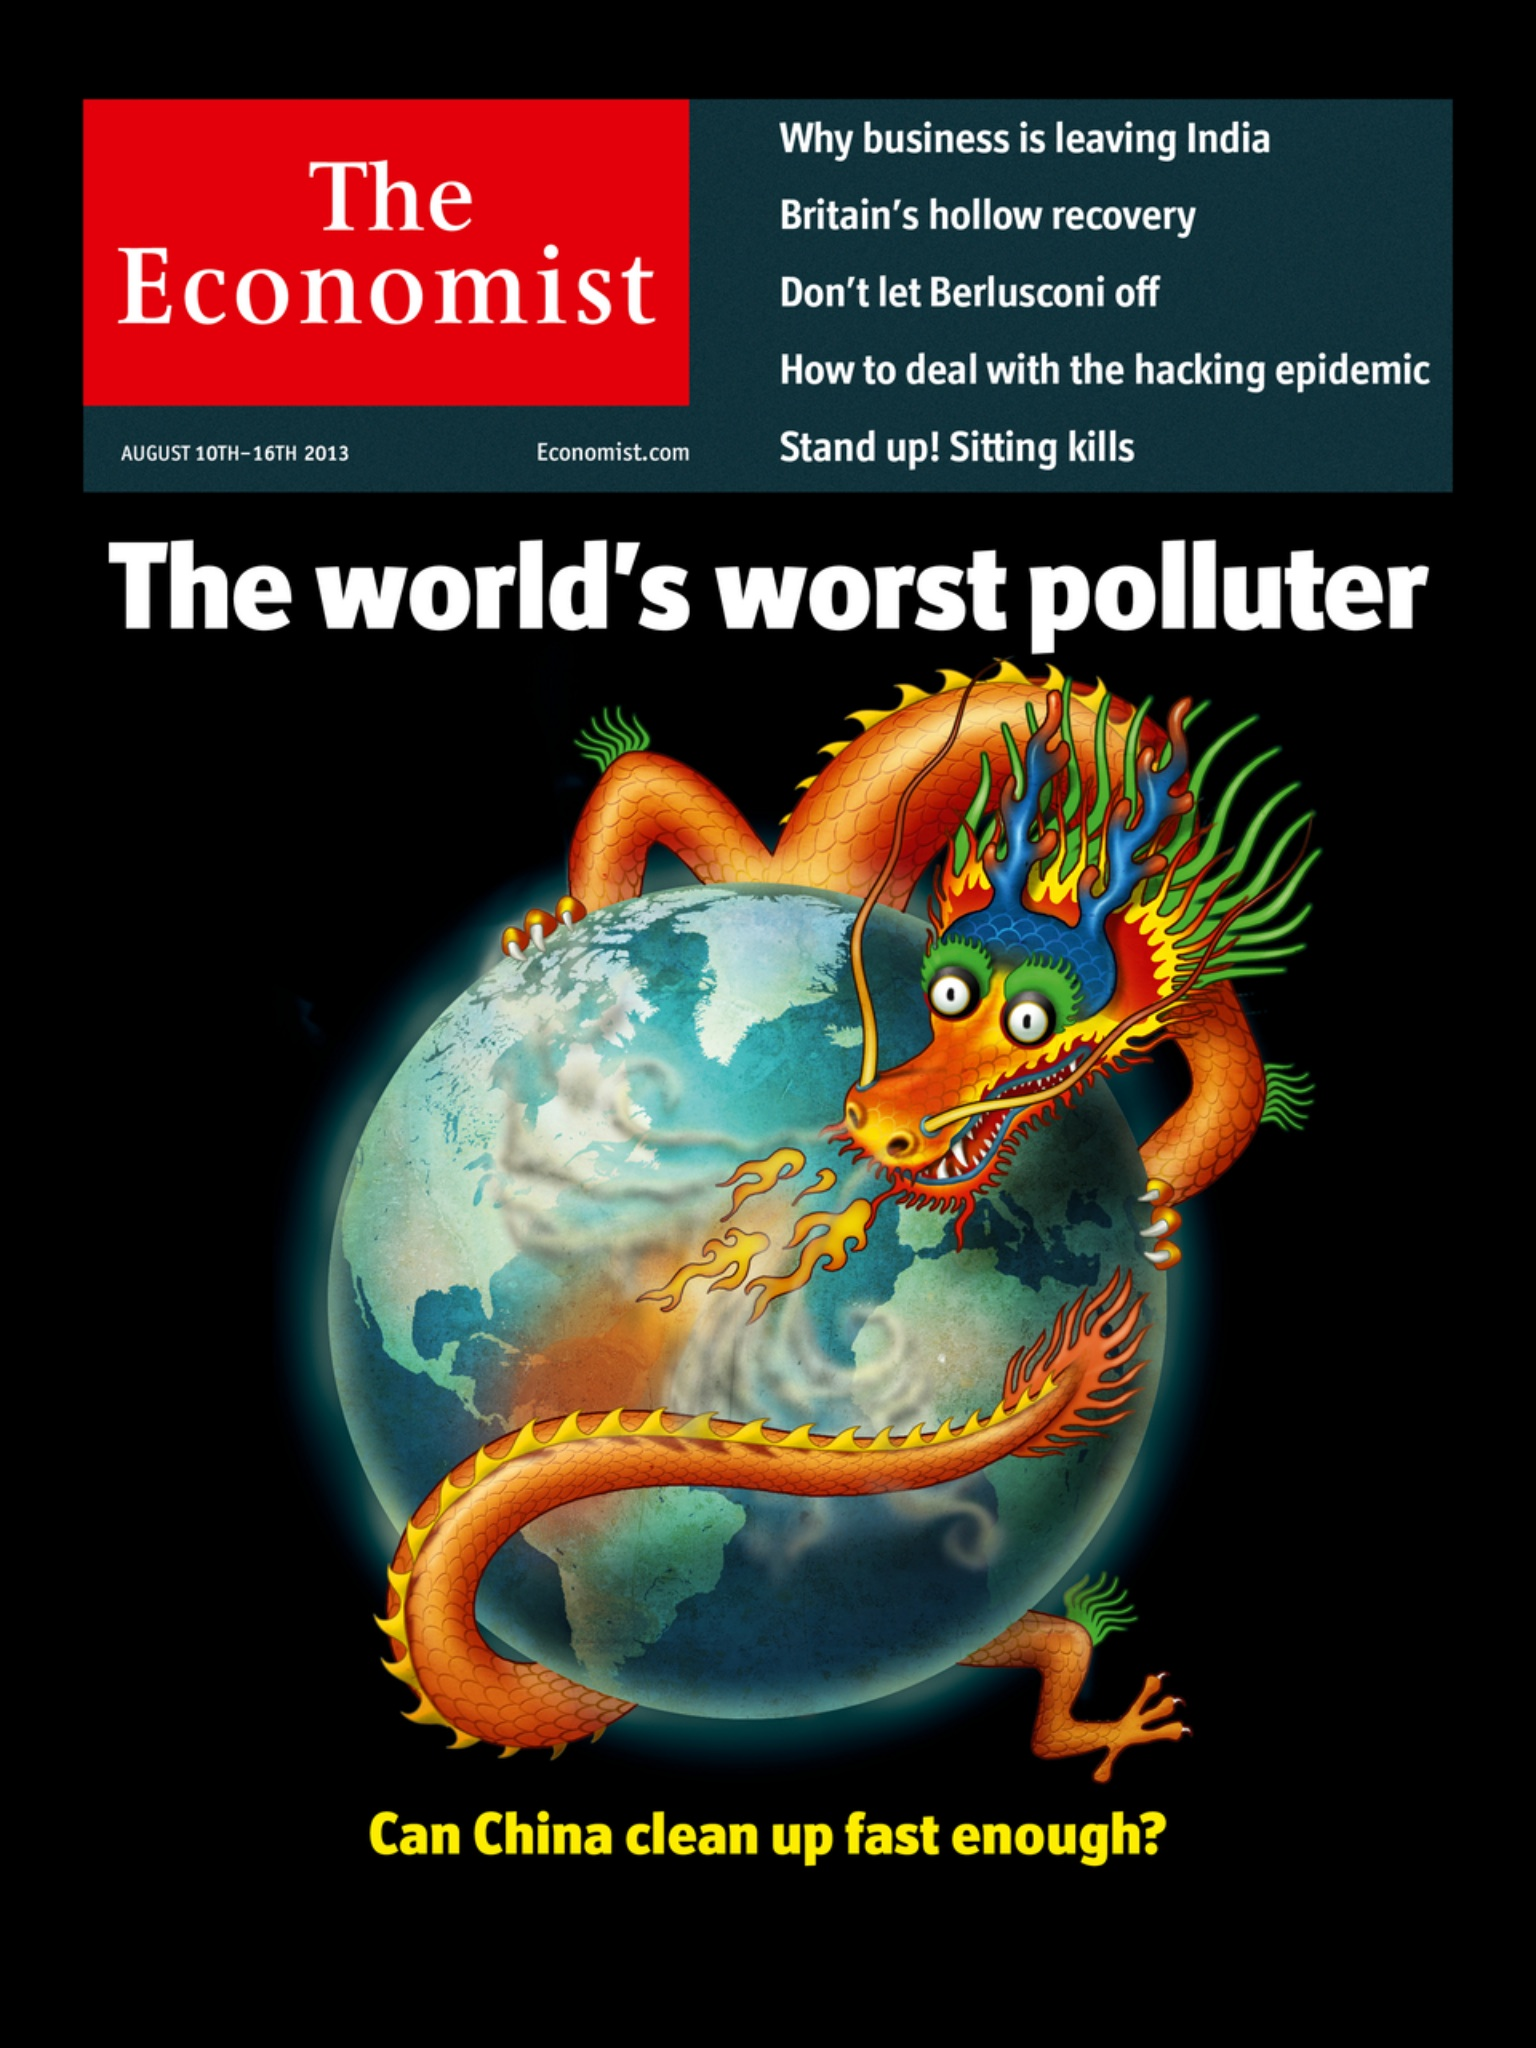 http://www.chinas-global-media-image.net/media/uploads/cover/10/images/130810Economist.jpg